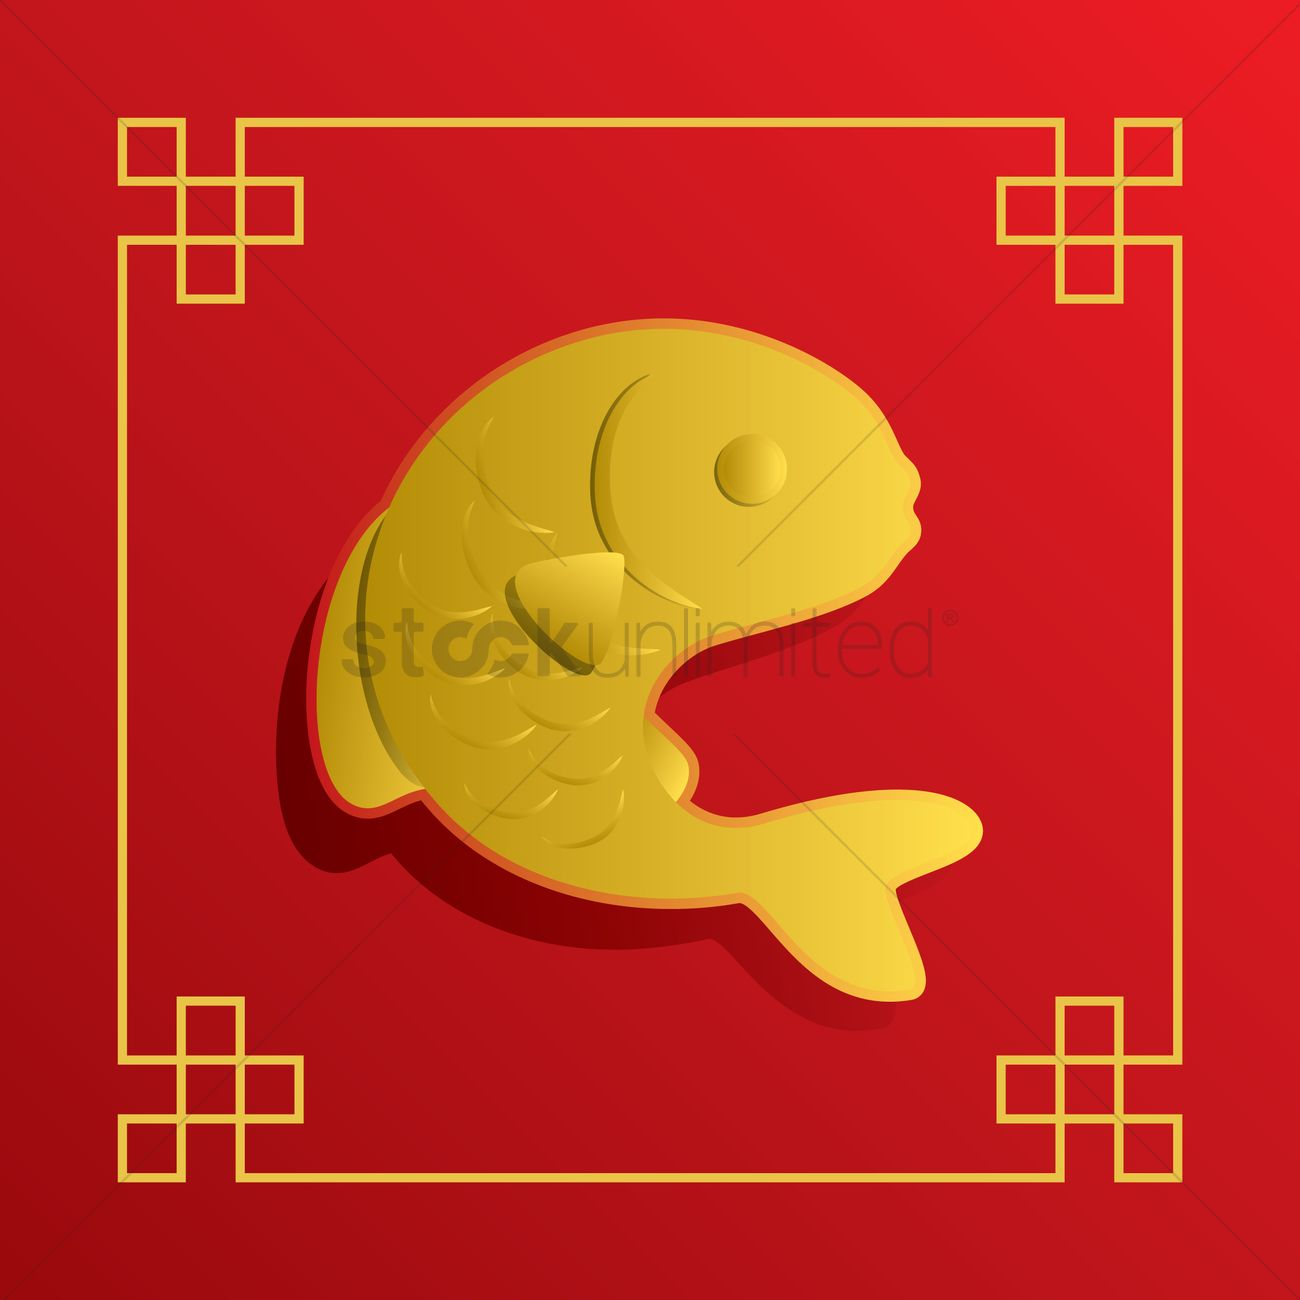 Chinese New Year Fish Greeting Card Design Vector Image 1407184